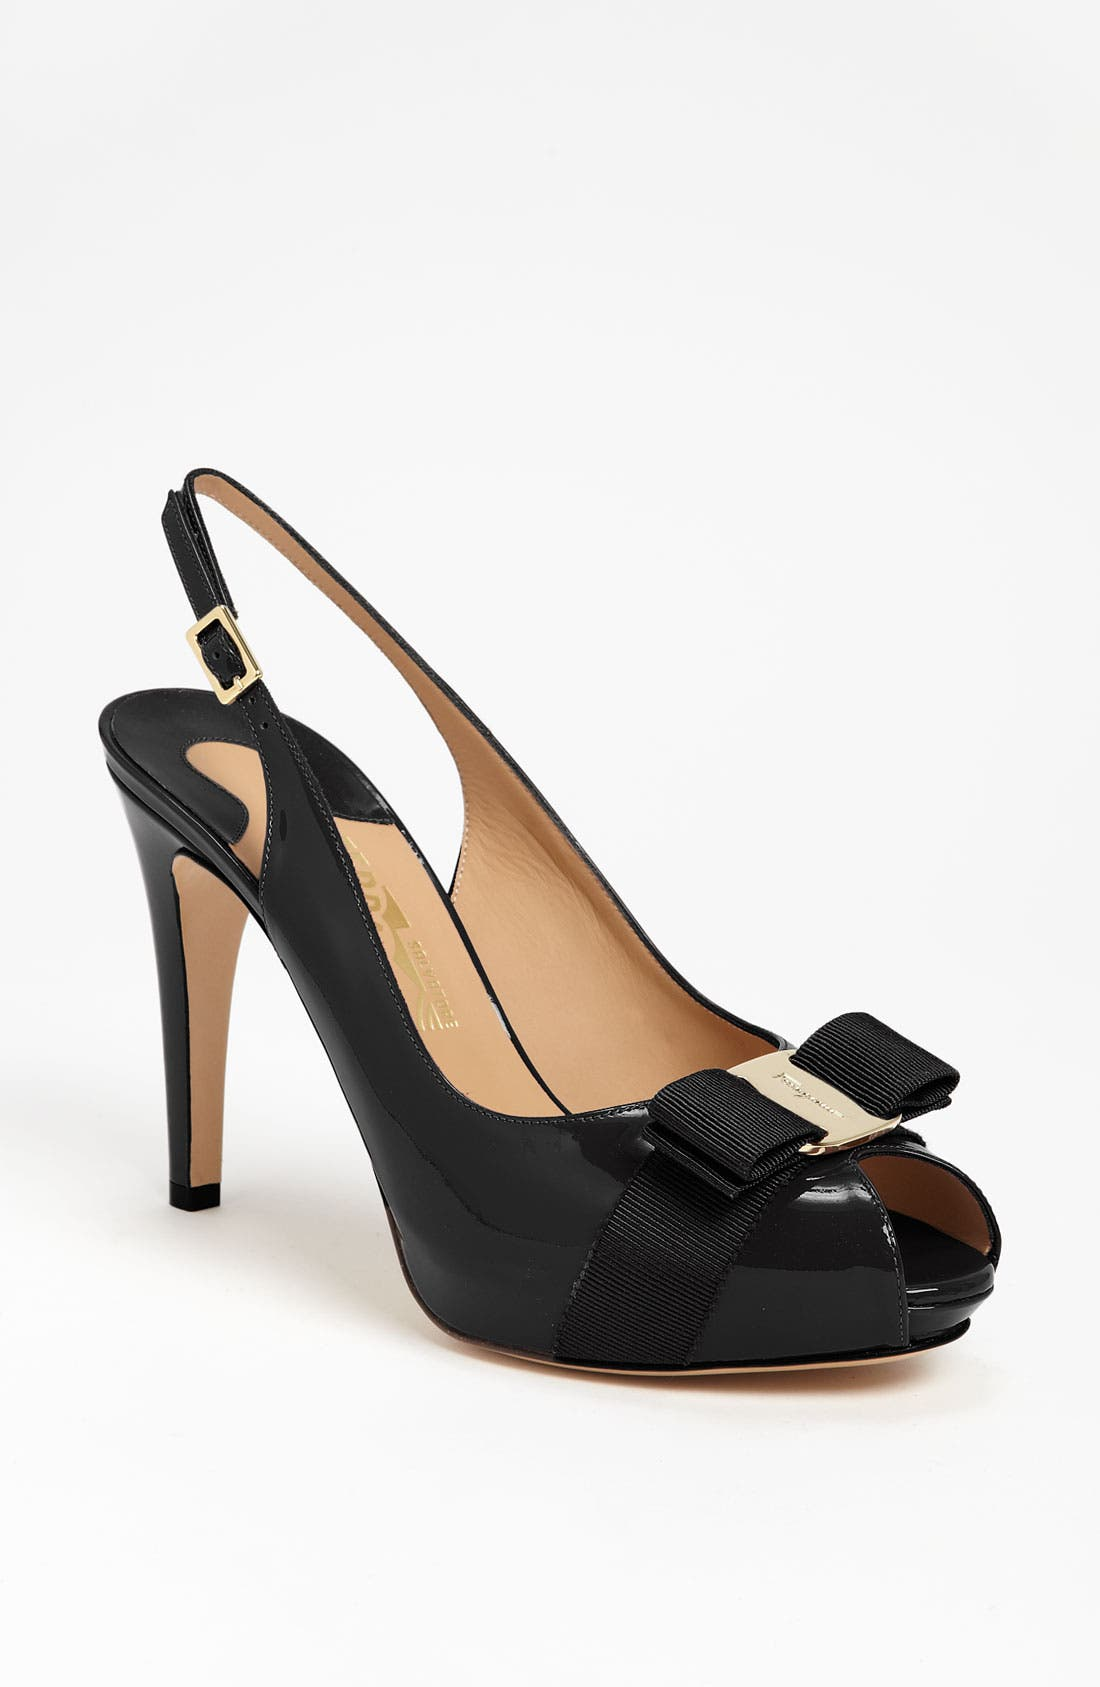 Alternate Image 1 Selected - Salvatore Ferragamo 'Tea' Pump